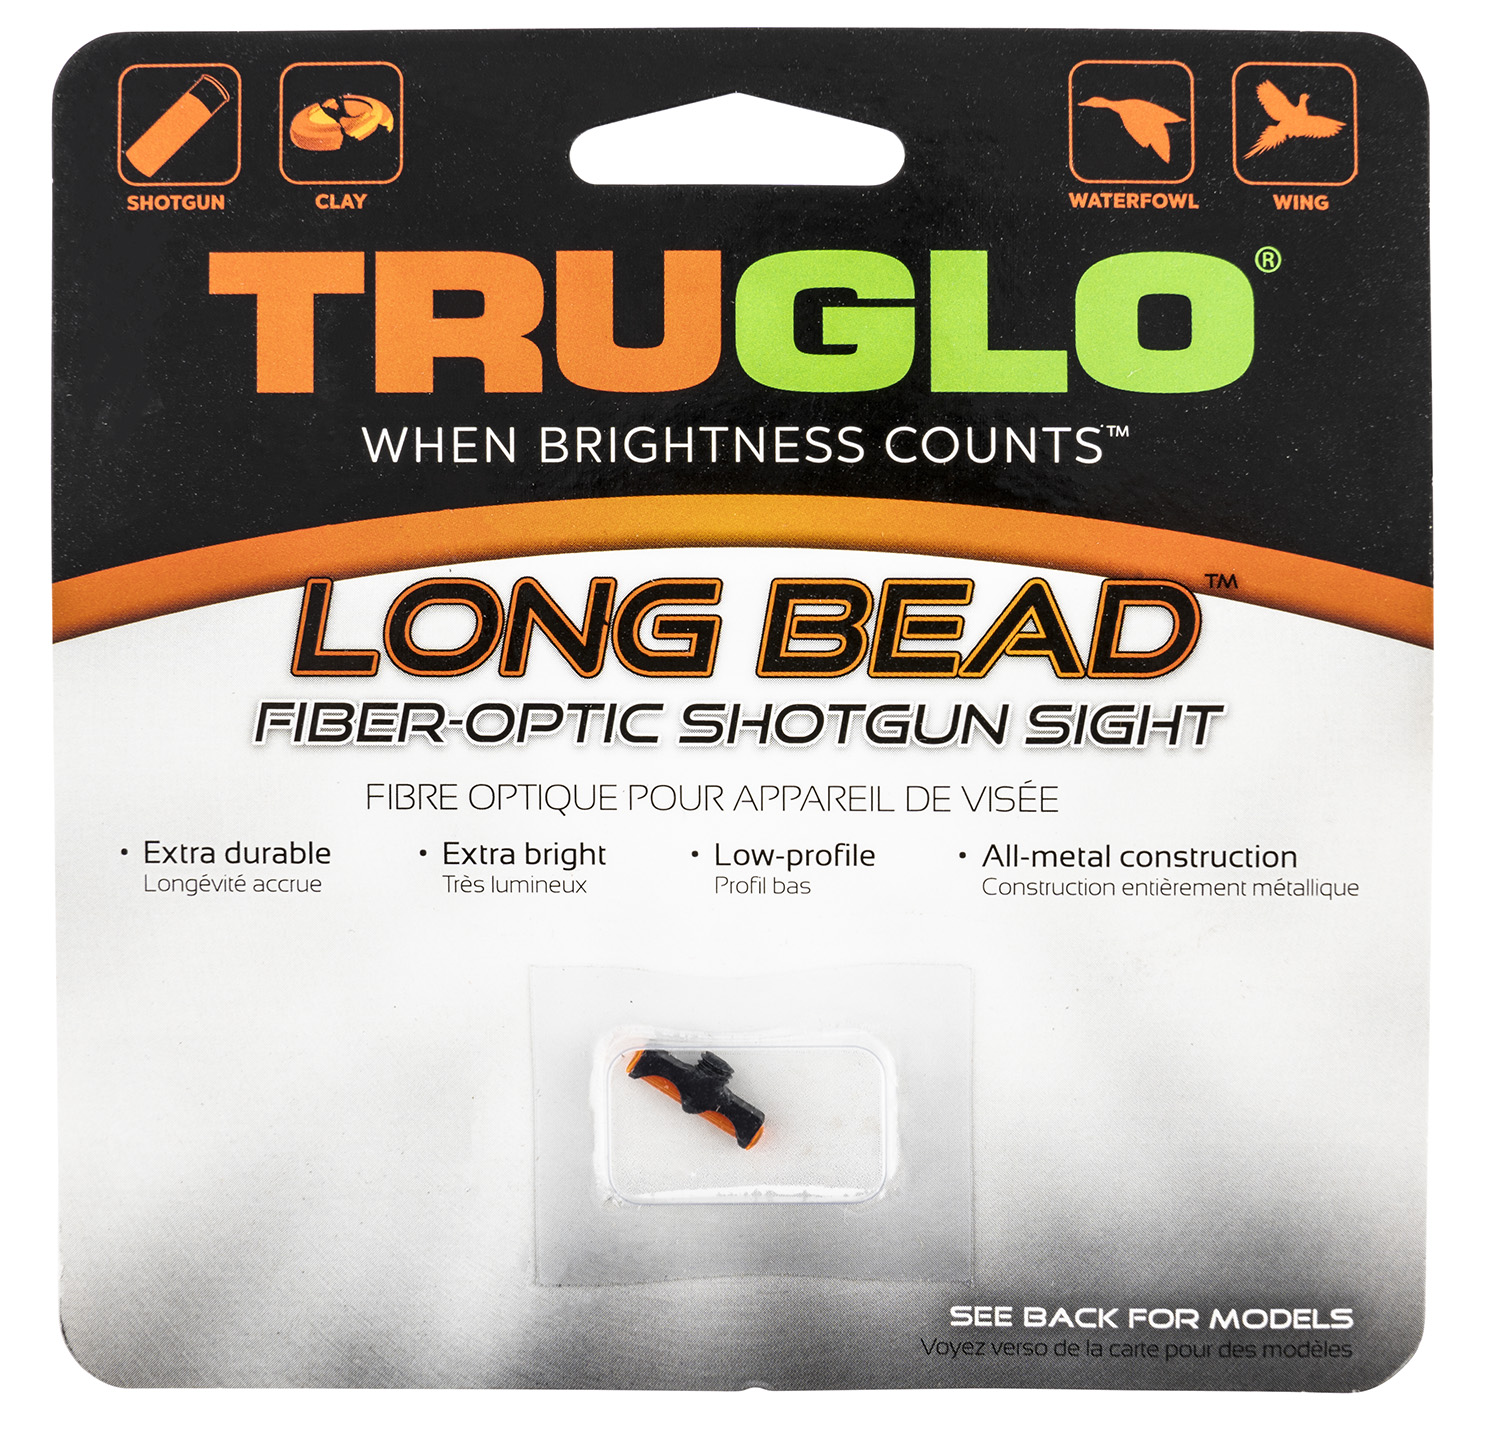 Truglo TG947AGM Long Bead Shotgun Sight Remington Green